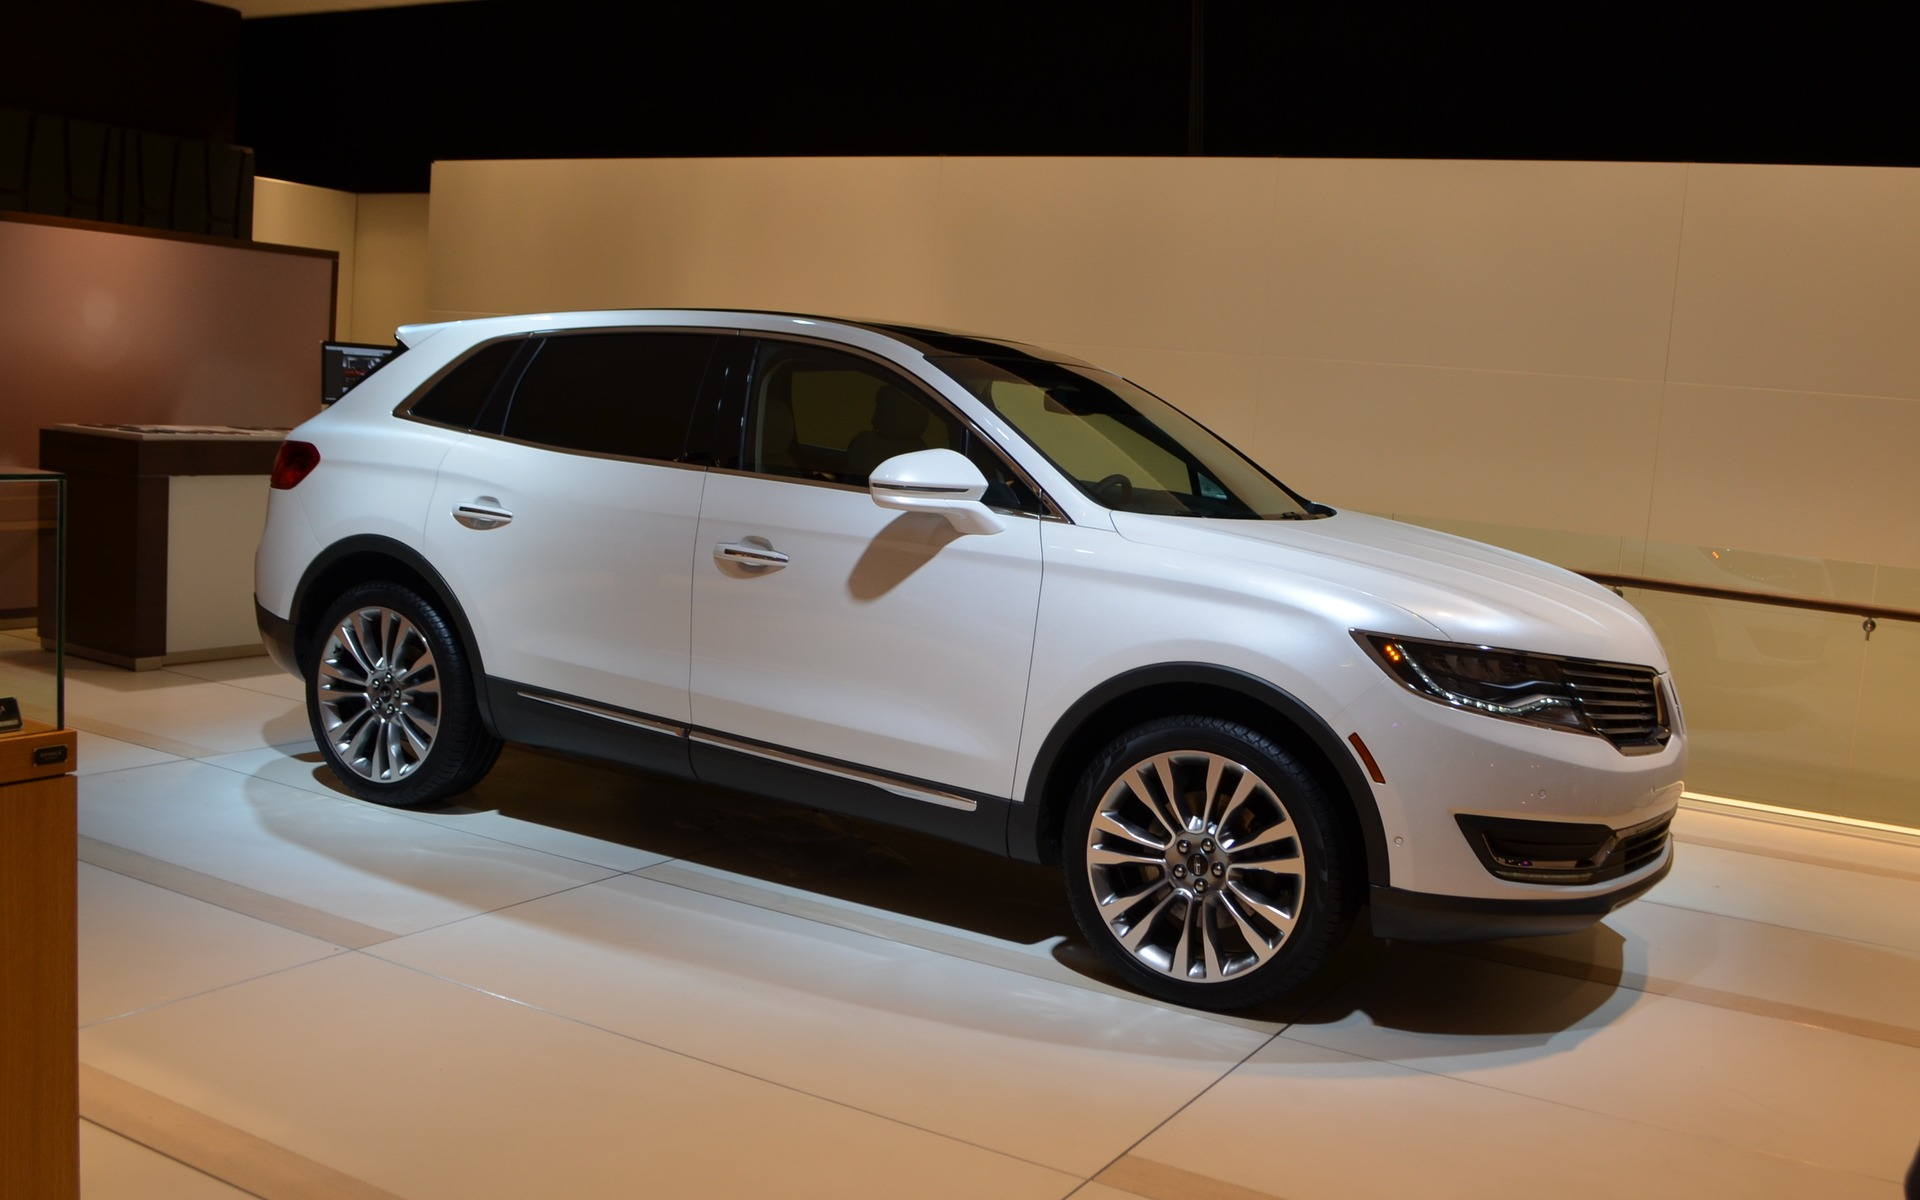 Here Is The 2016 Lincoln MKX - 11/12